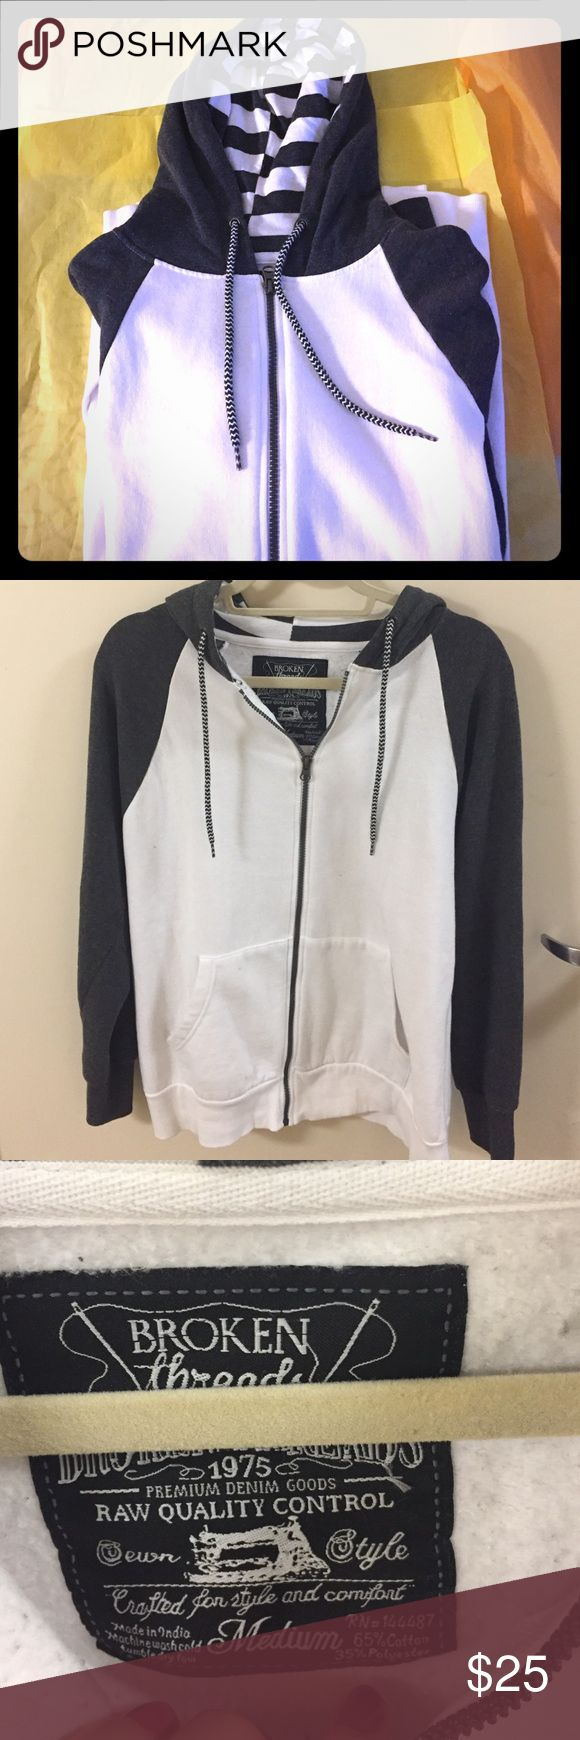 NWOT WHITE AND GREY ZIP-UP SWEATSHIRT This sweater is in excellent condition! Great light sweater for any guy , colors go great with anything! Comment with questions :) Broken Threads Sweaters Zip Up